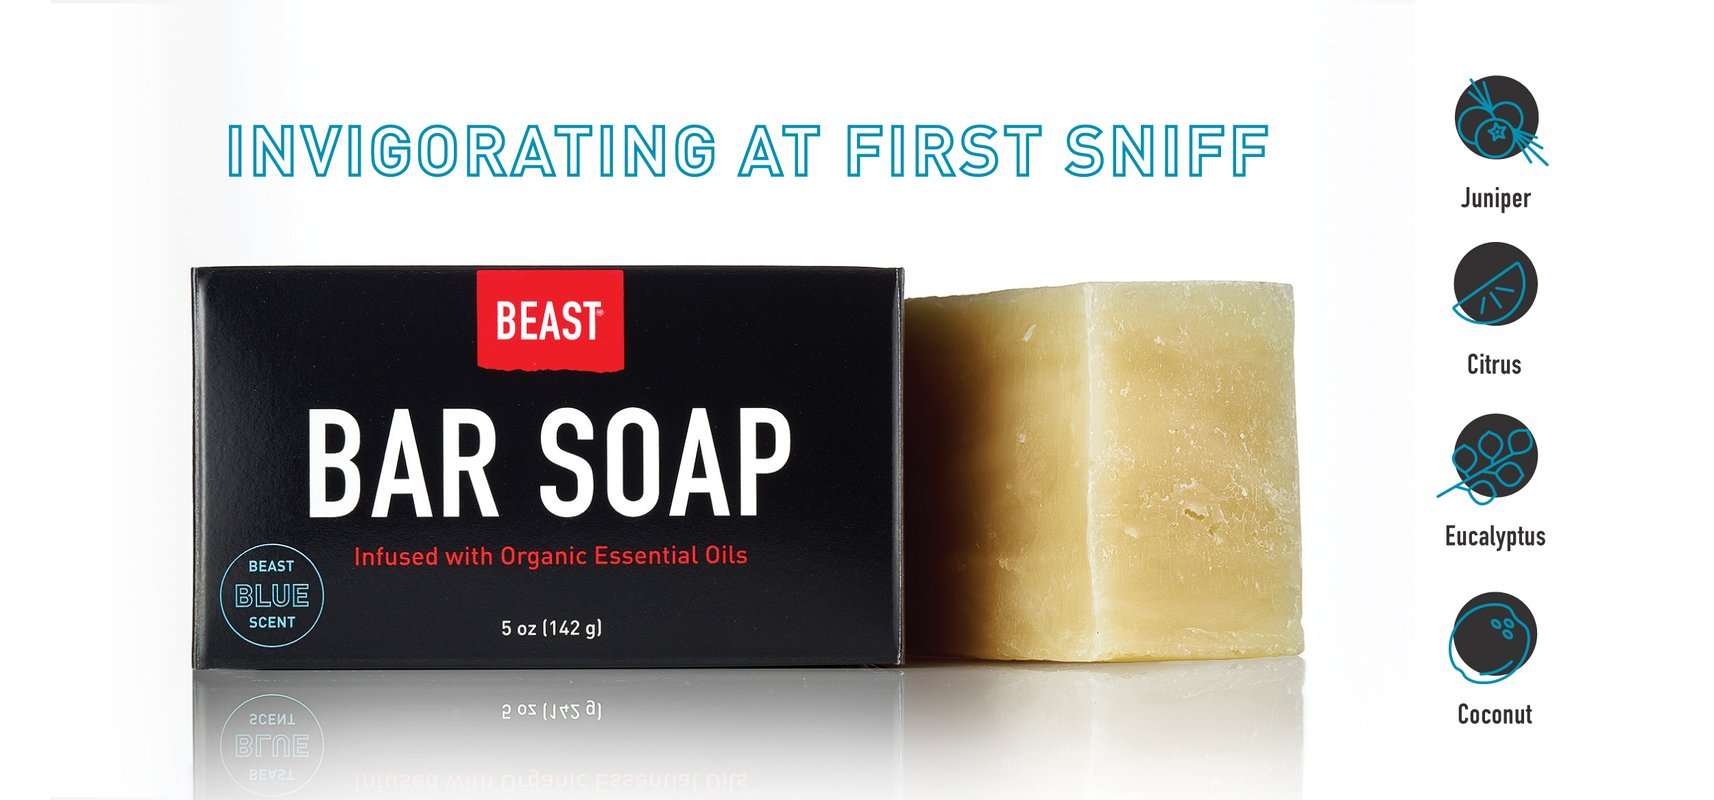 Bar Soap with Natural Organic Essential Oils and Beast Blue Scent